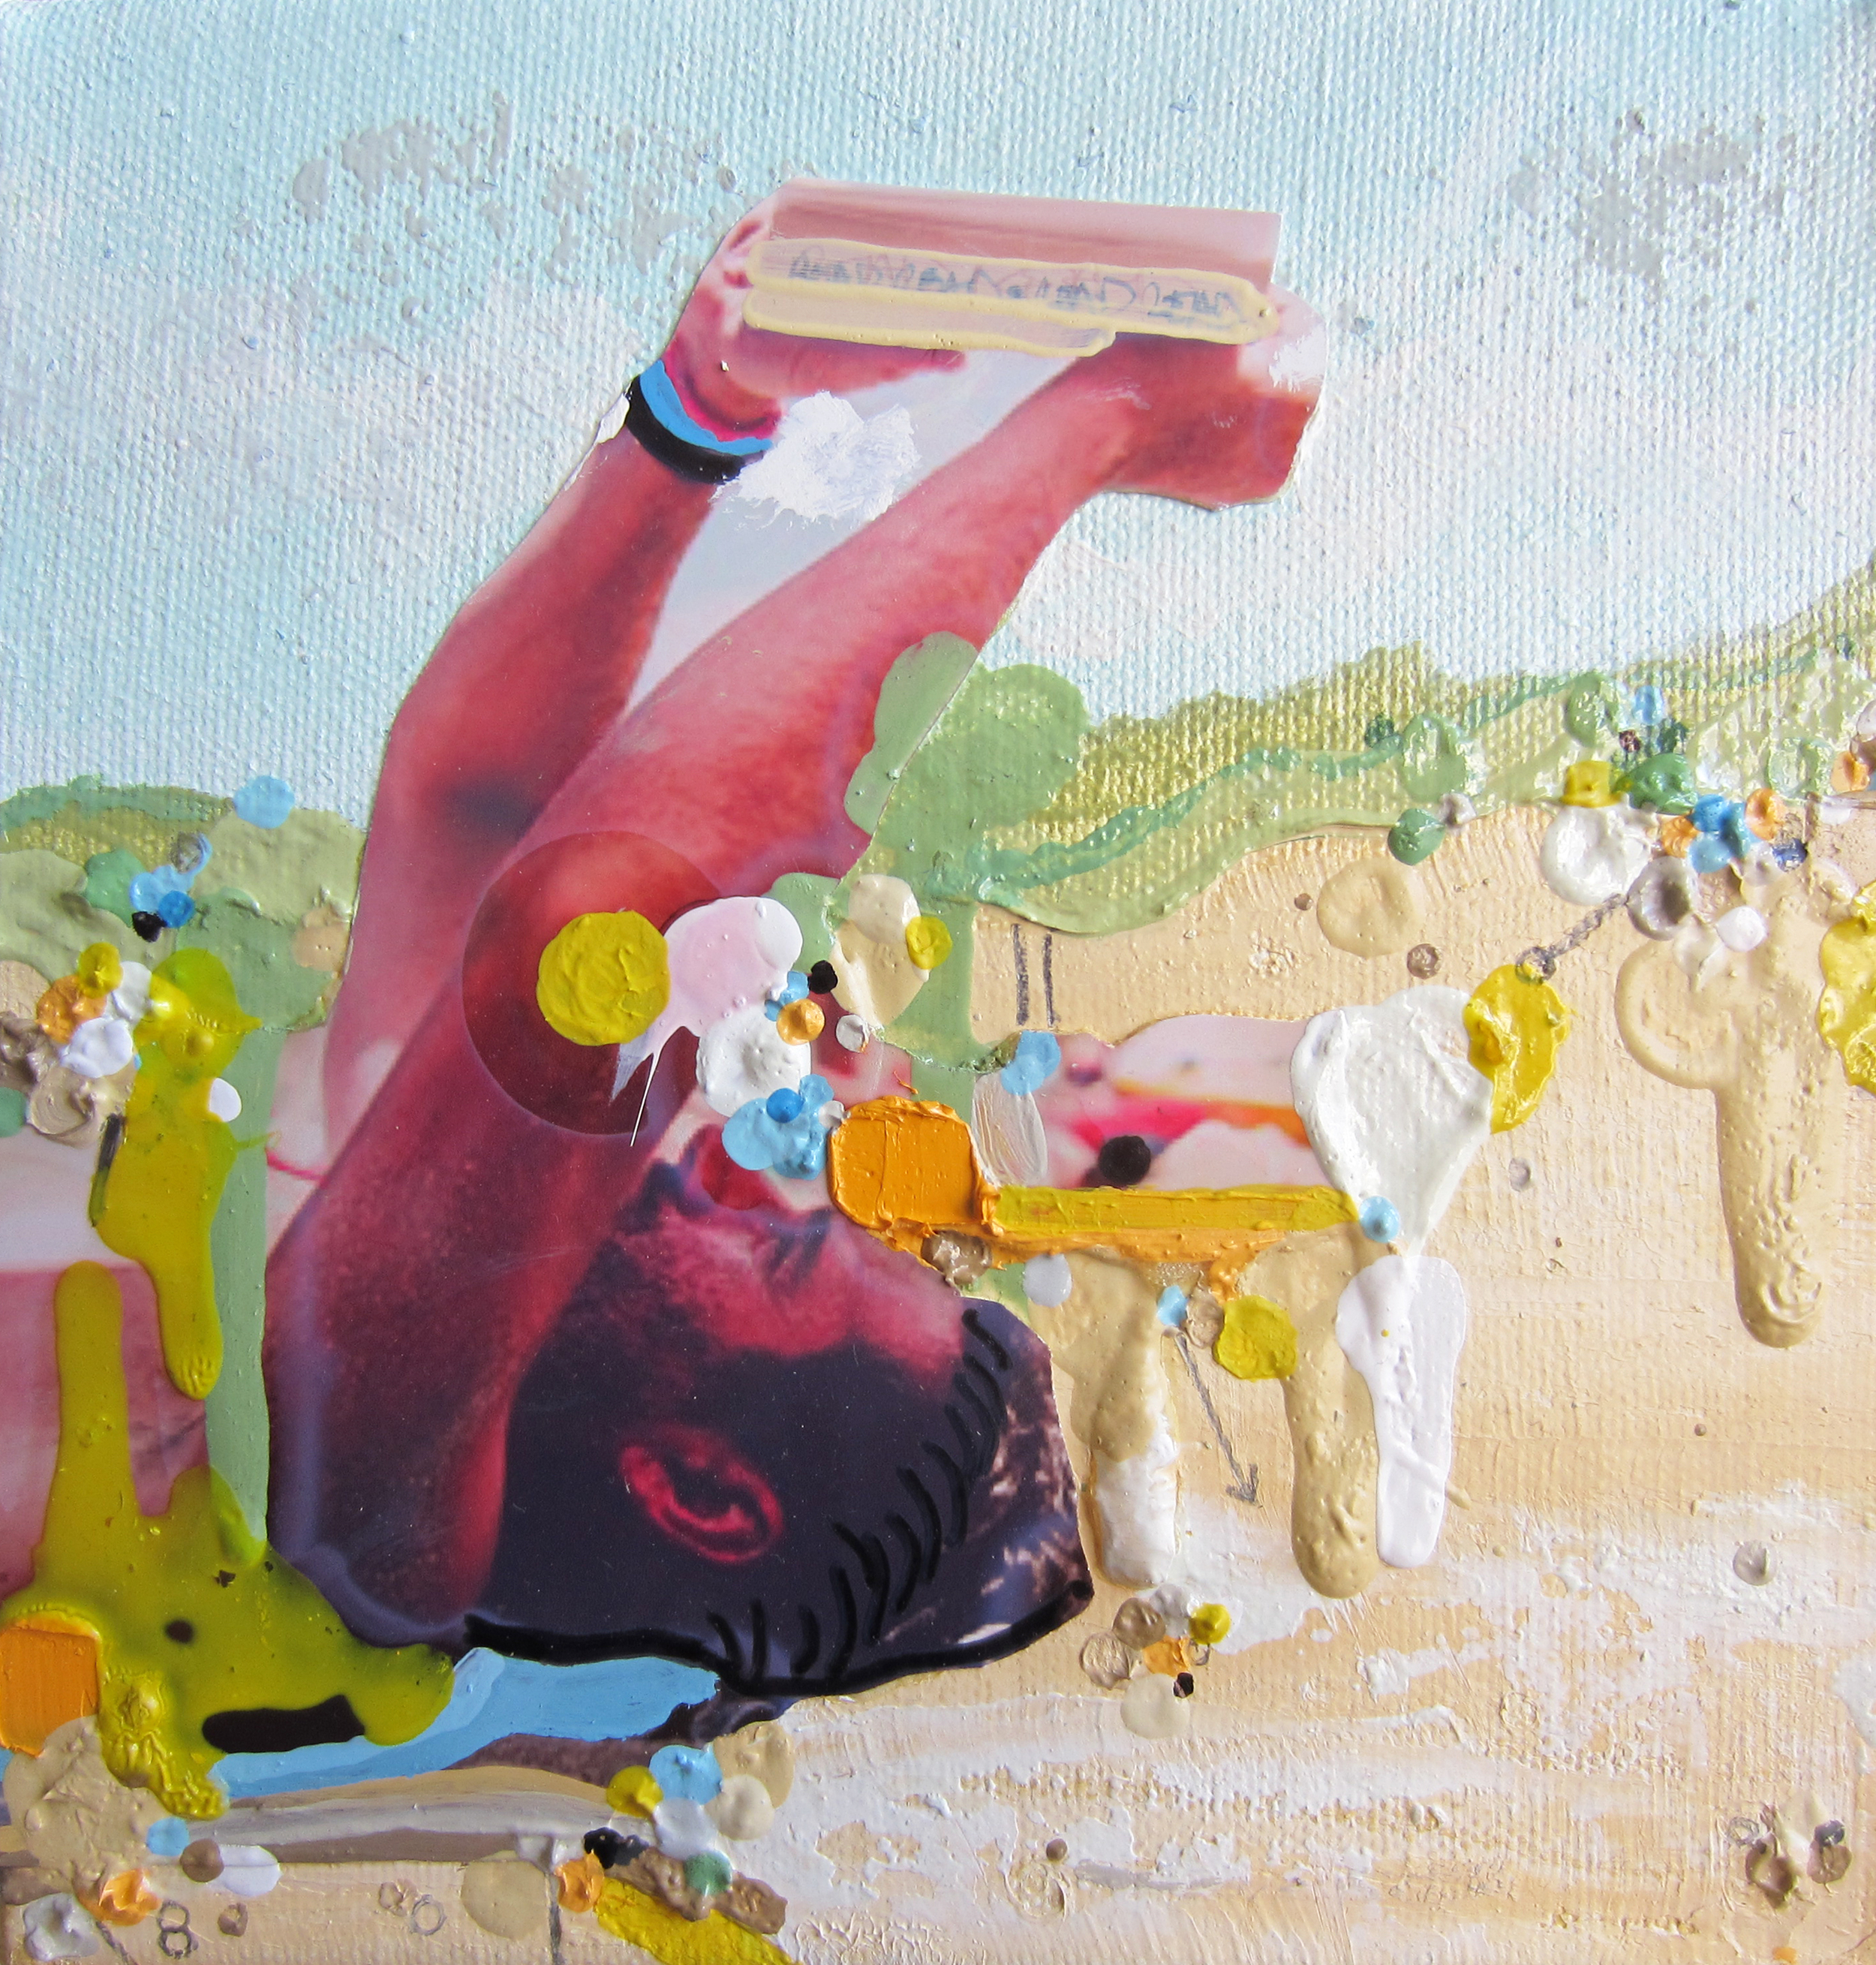 Summer Fantasies, 2014, Oil and Mixed Media on canvas